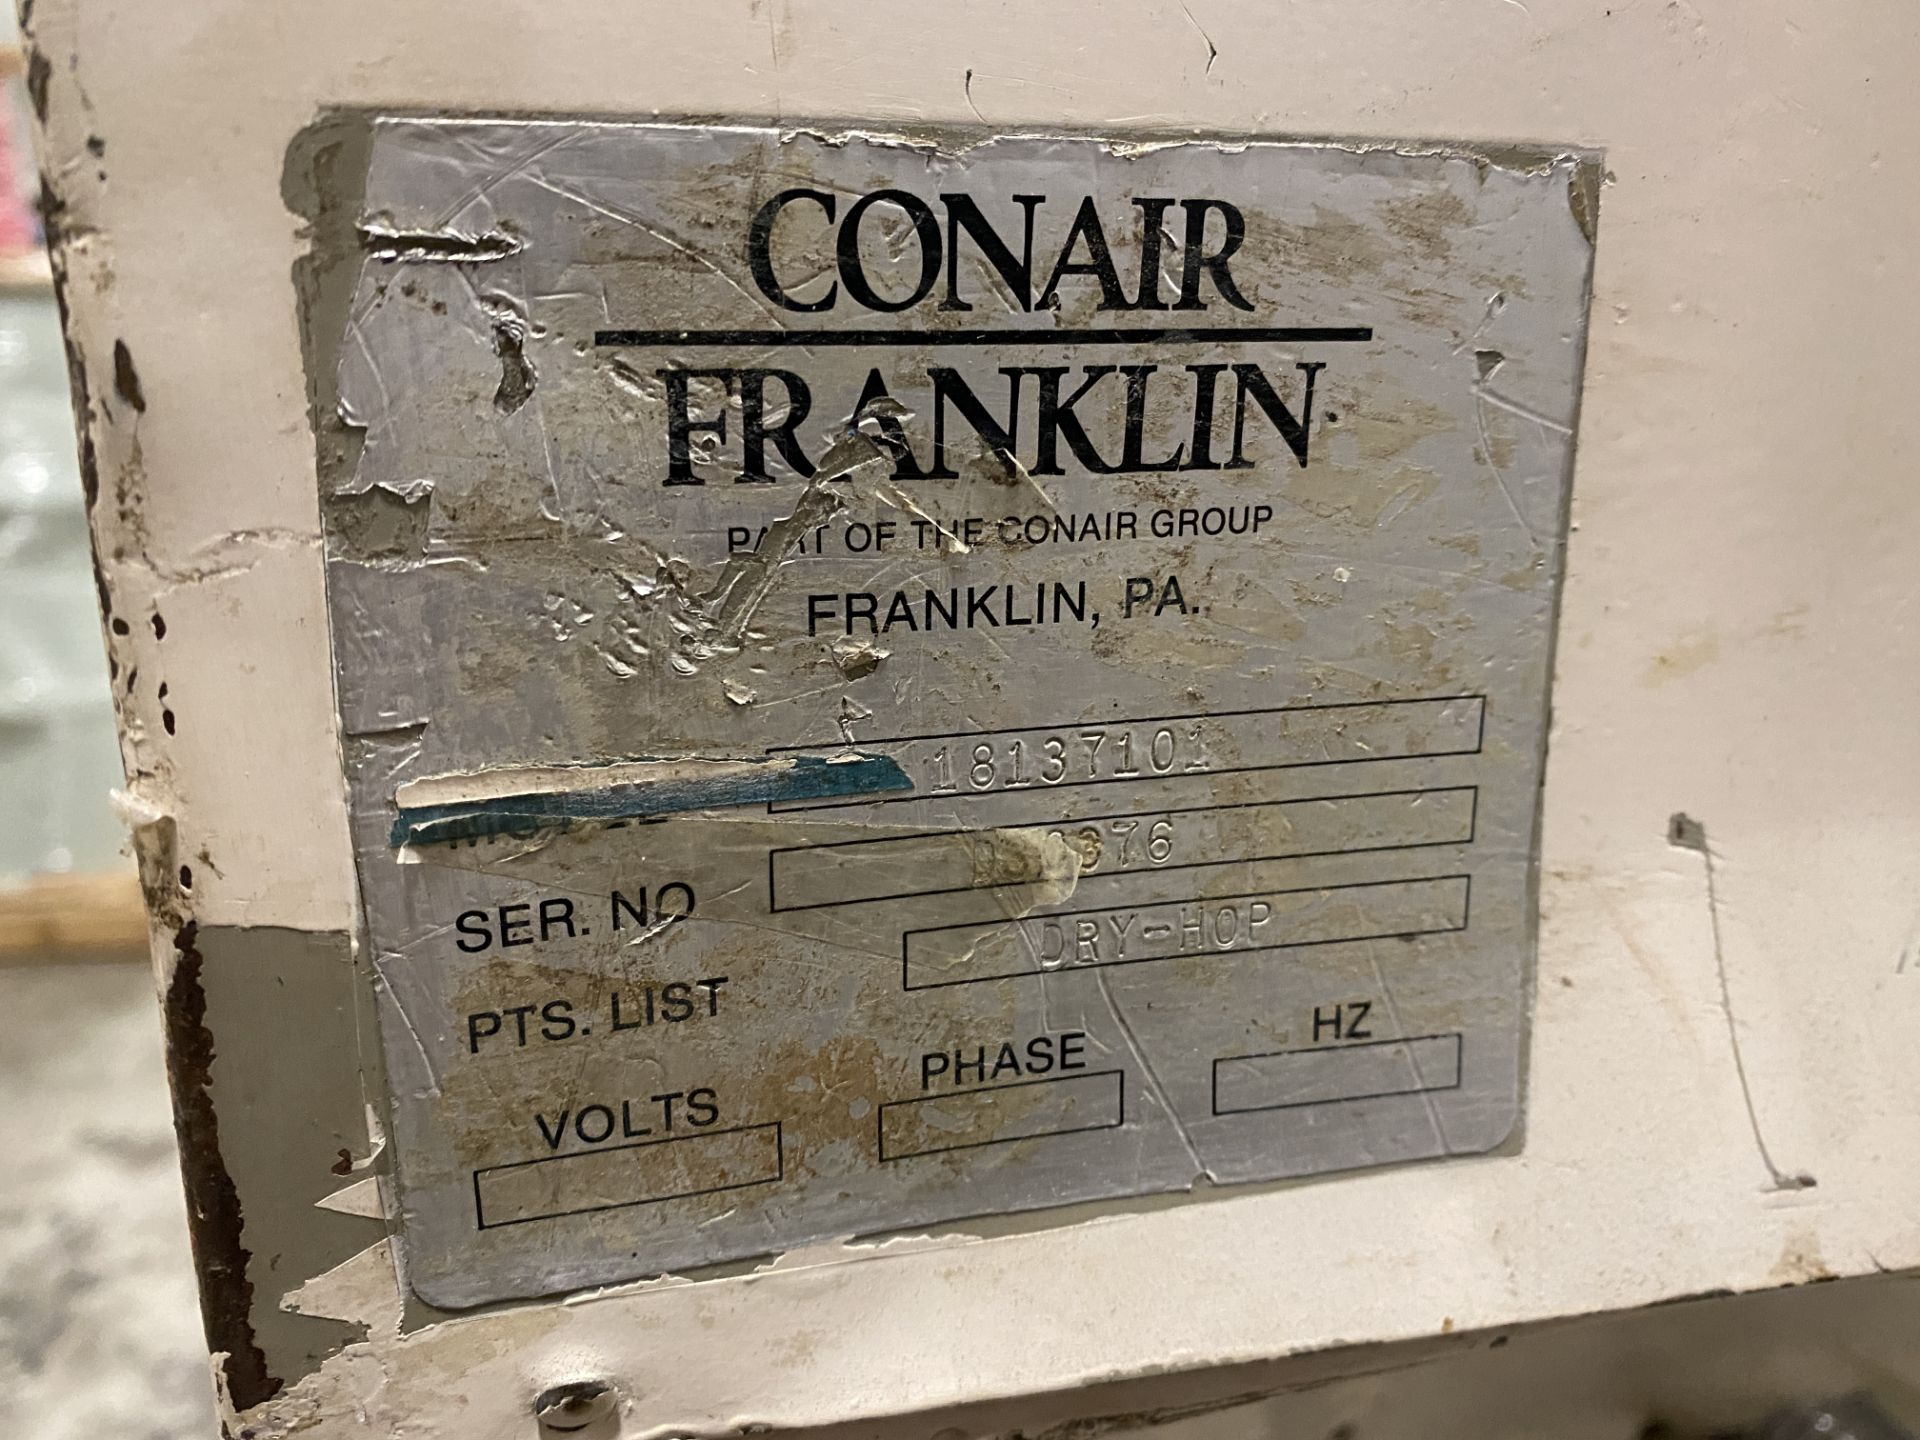 Conair Franklin DHB3A4S030050 Machine Mount Dryer - Image 8 of 8